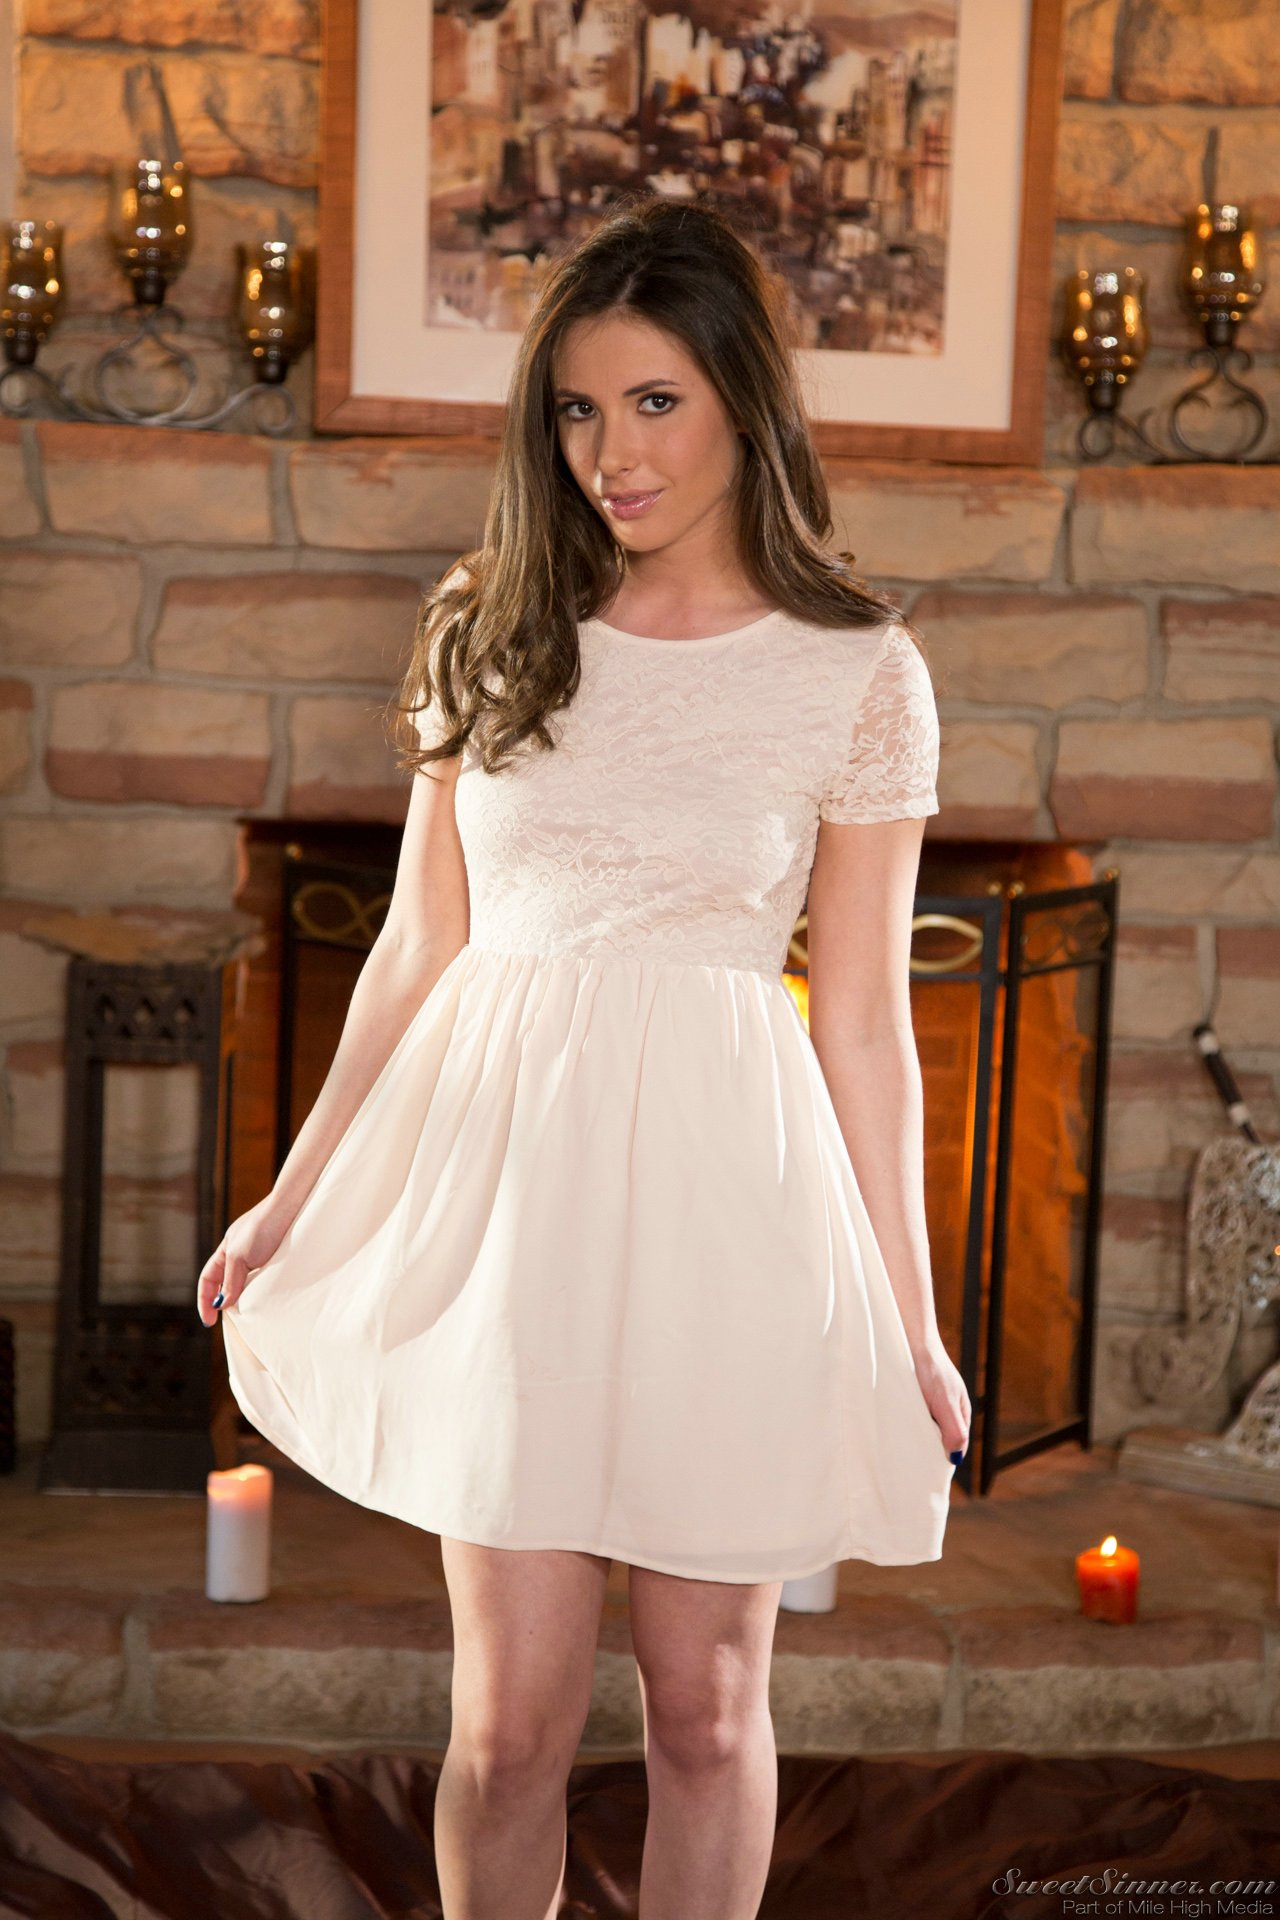 casey calvert in beautiful dress stripping and showing off